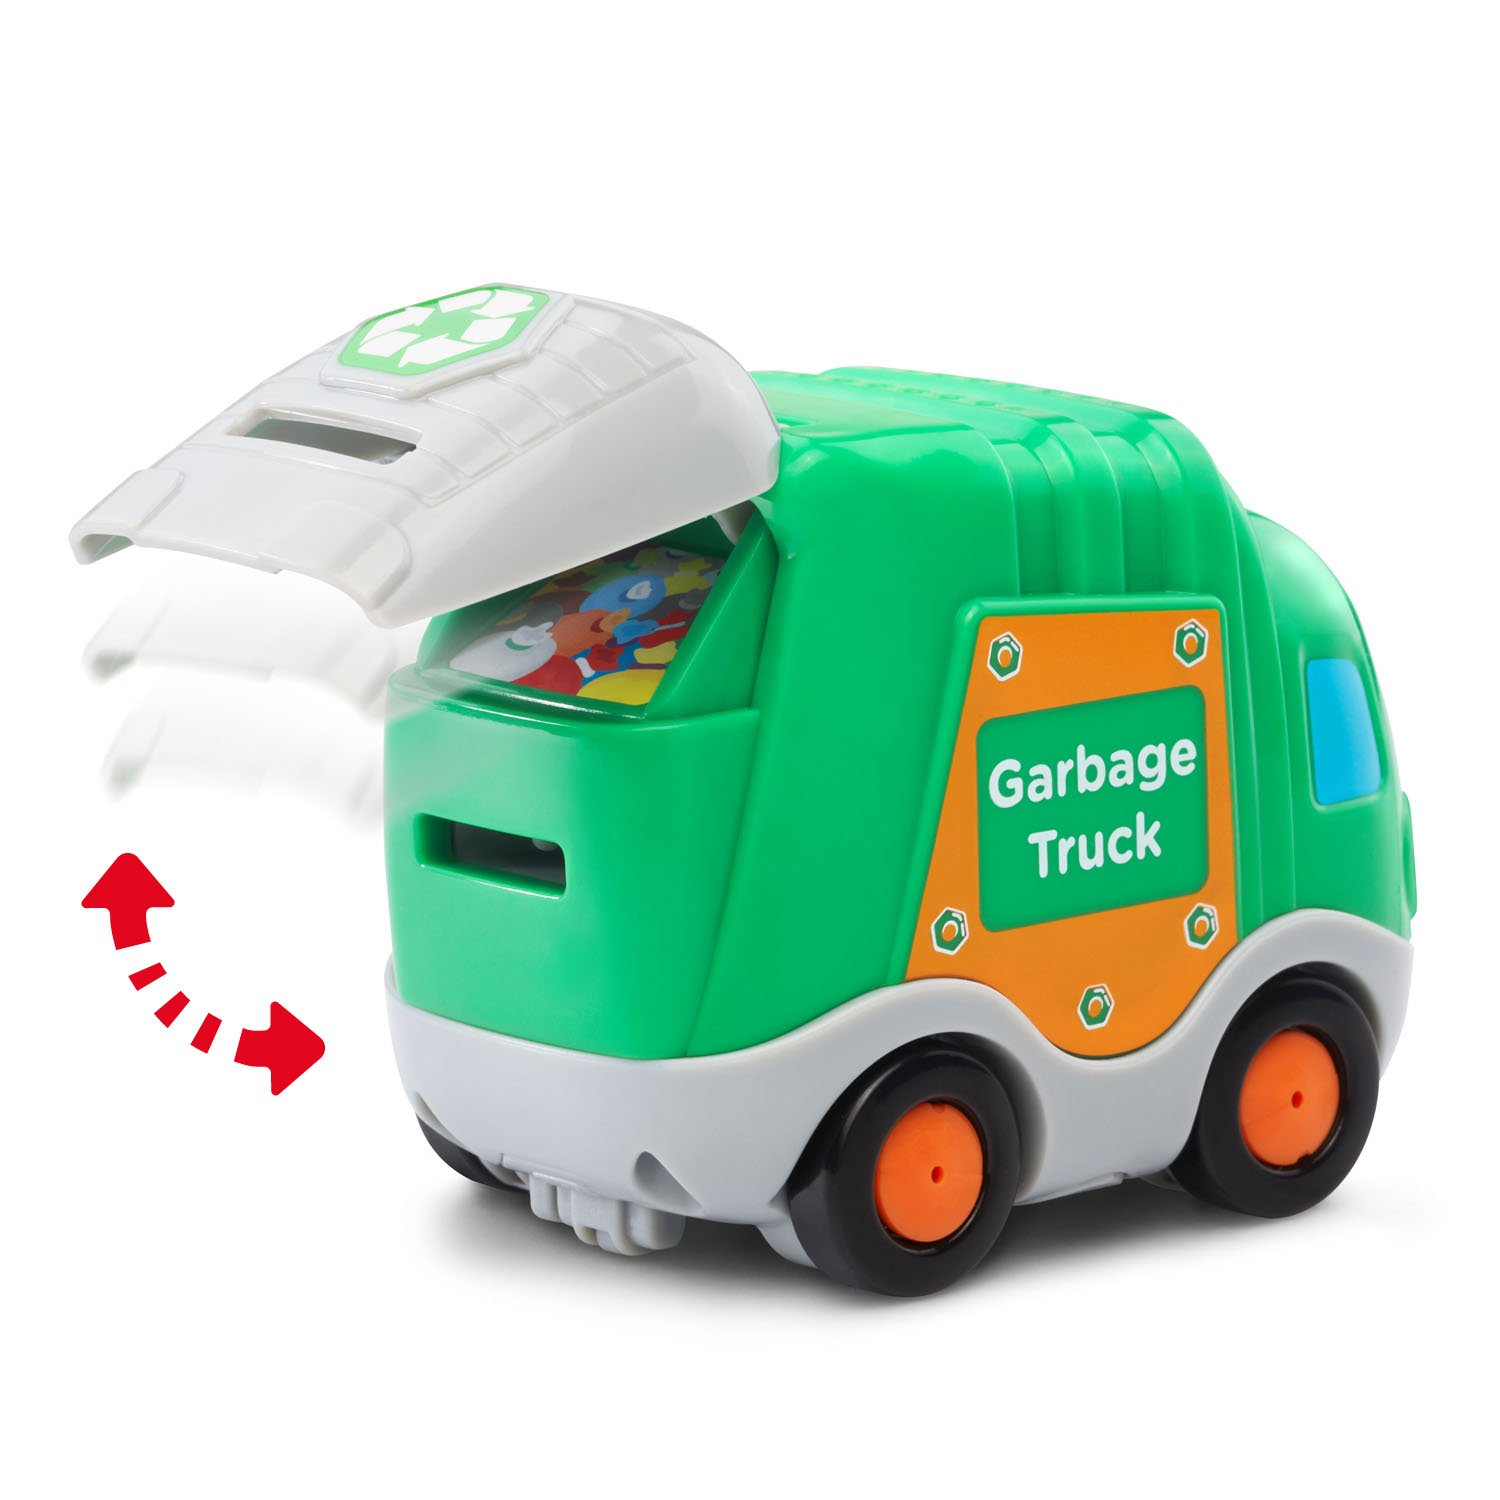 VTech Go! Go! Smart Wheels Garbage Truck and Excavator by VTech (Image #2)